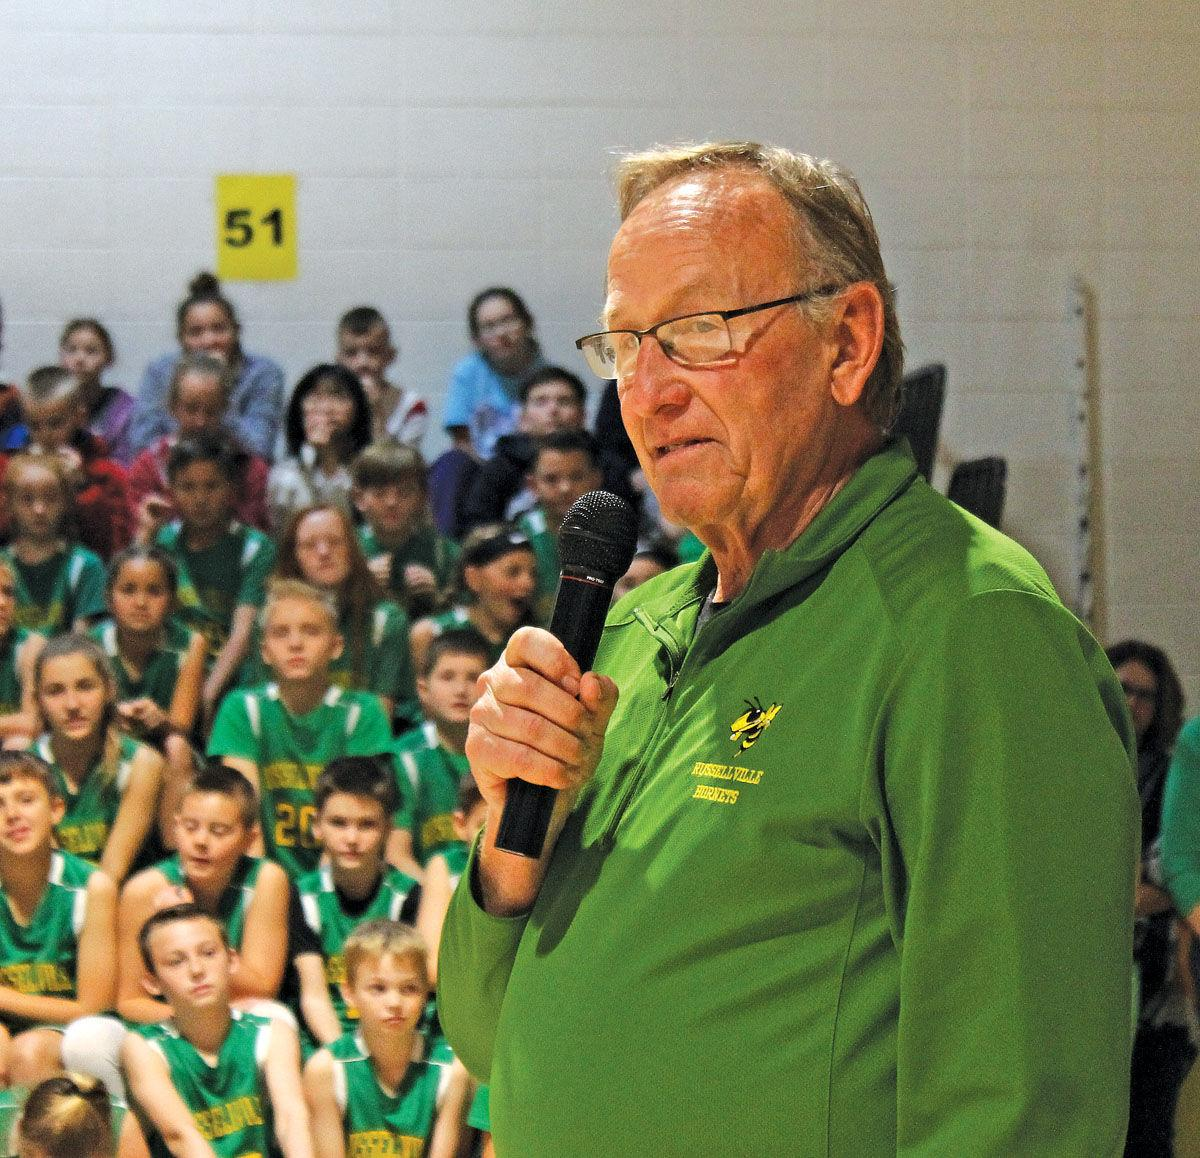 Russellville Elementary gymnasium renamed for long-time coach and principal Sammie Taylor